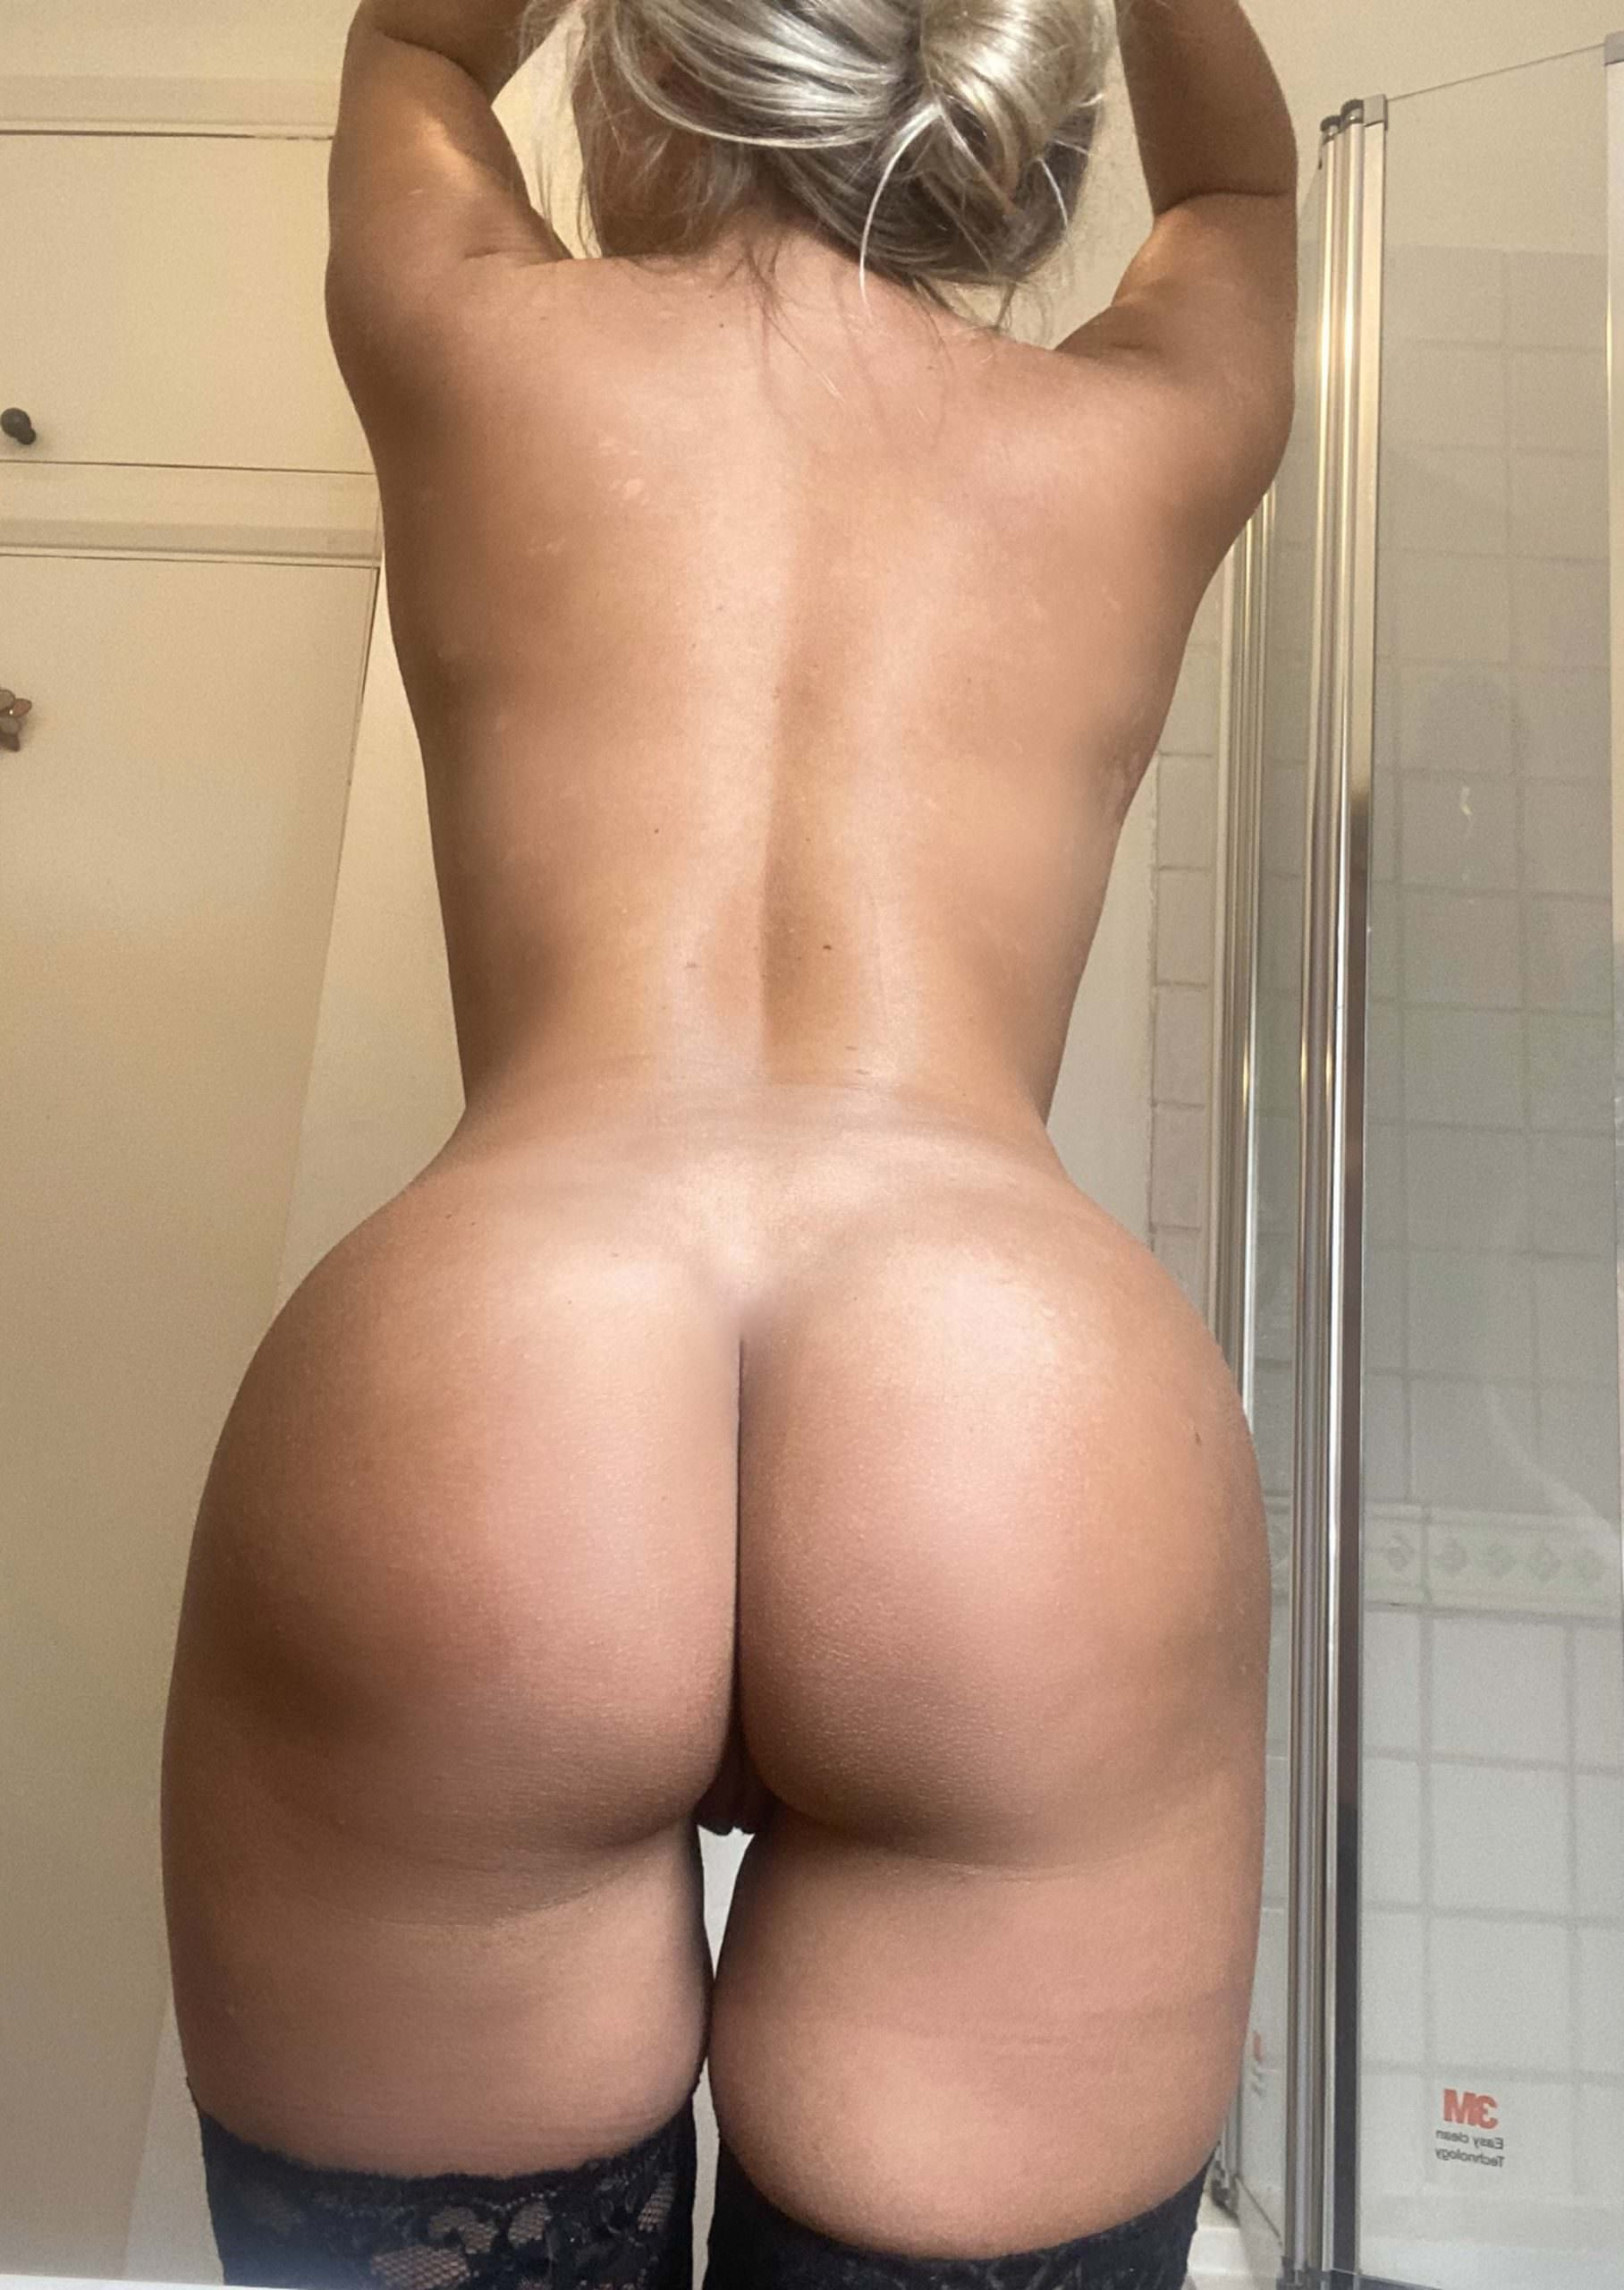 NEW PORN: Luce Nicholson Nude Onlyfans Lucy Leaked!